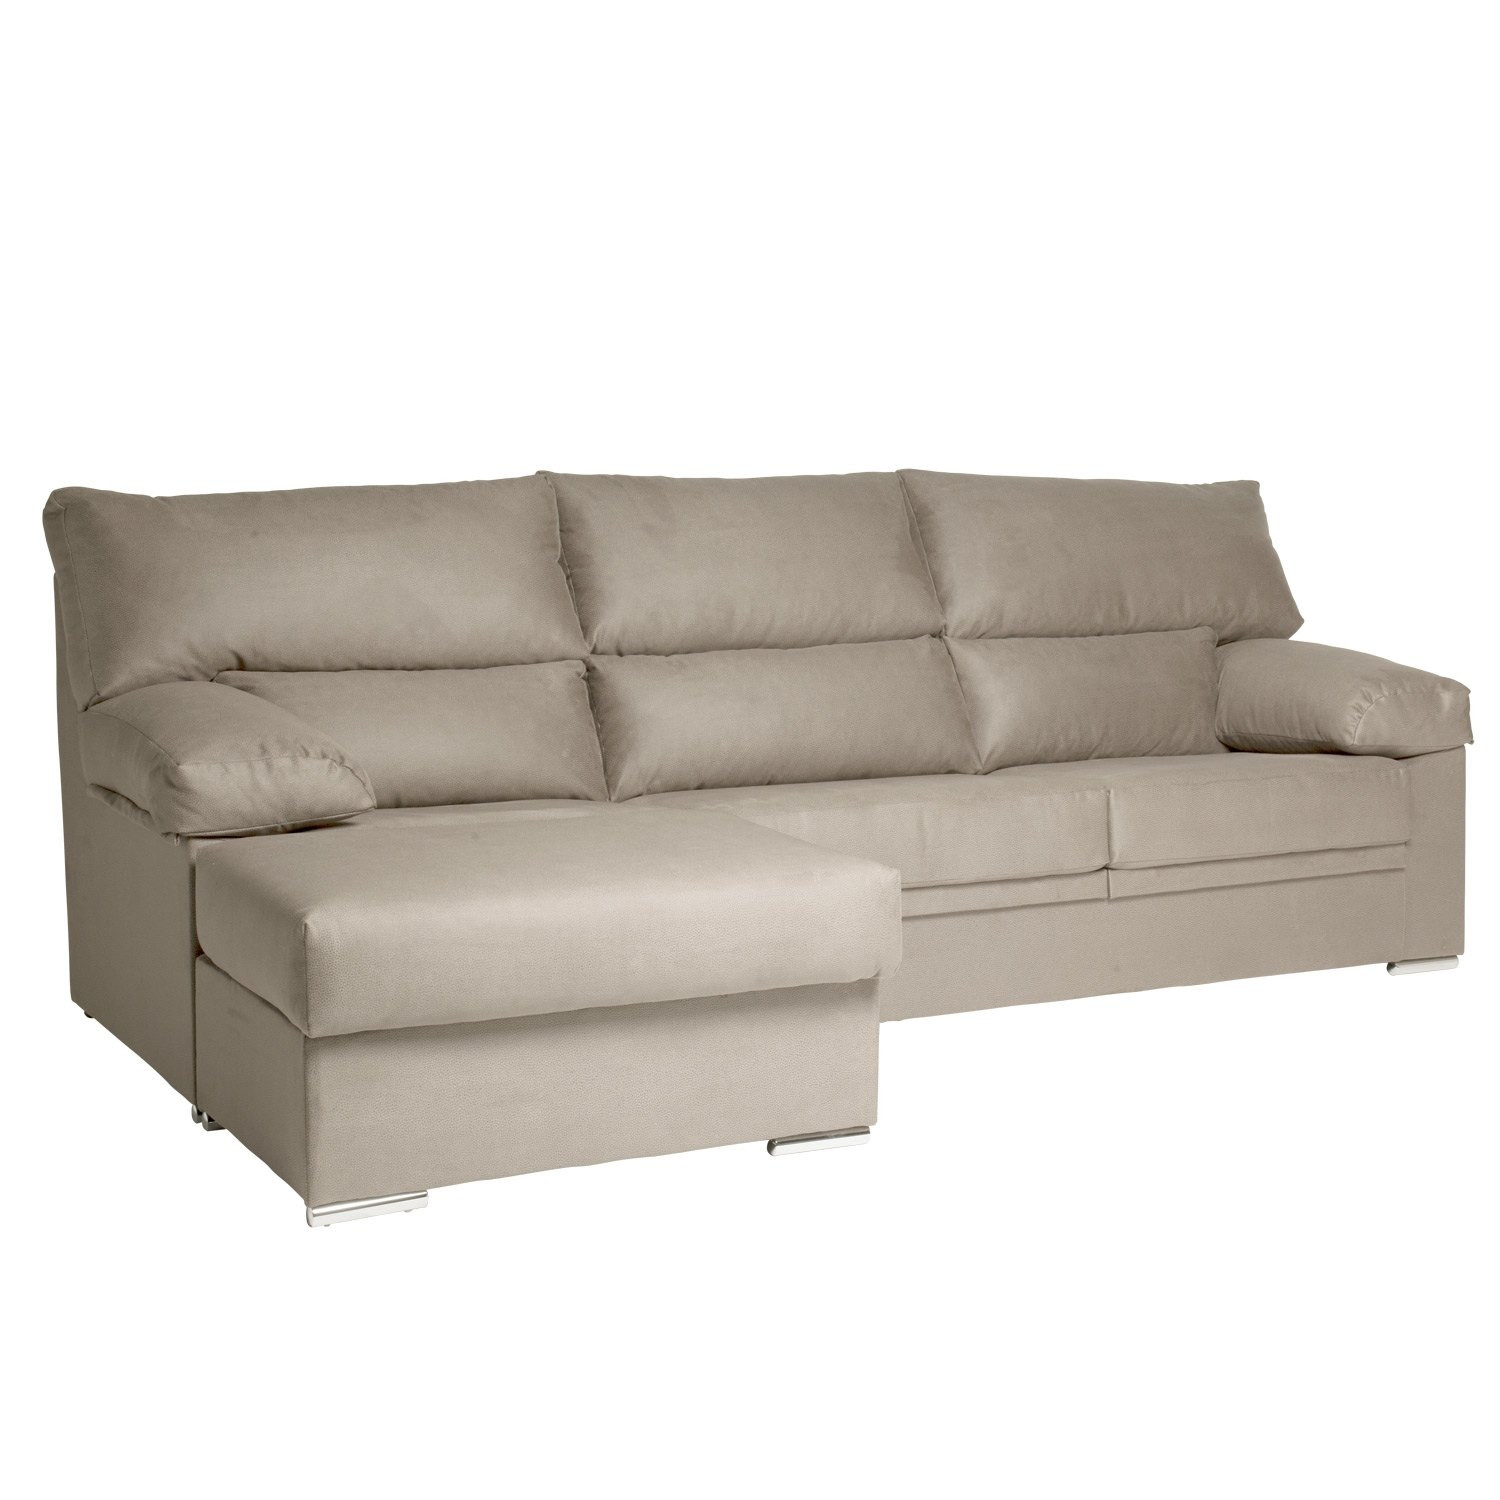 Sofa 3 Plazas Chaise Longue Gran sofá 3 Y 2 Plazas Con Chaise Longue Arlés En Oferta Of 37  atractivo sofa 3 Plazas Chaise Longue